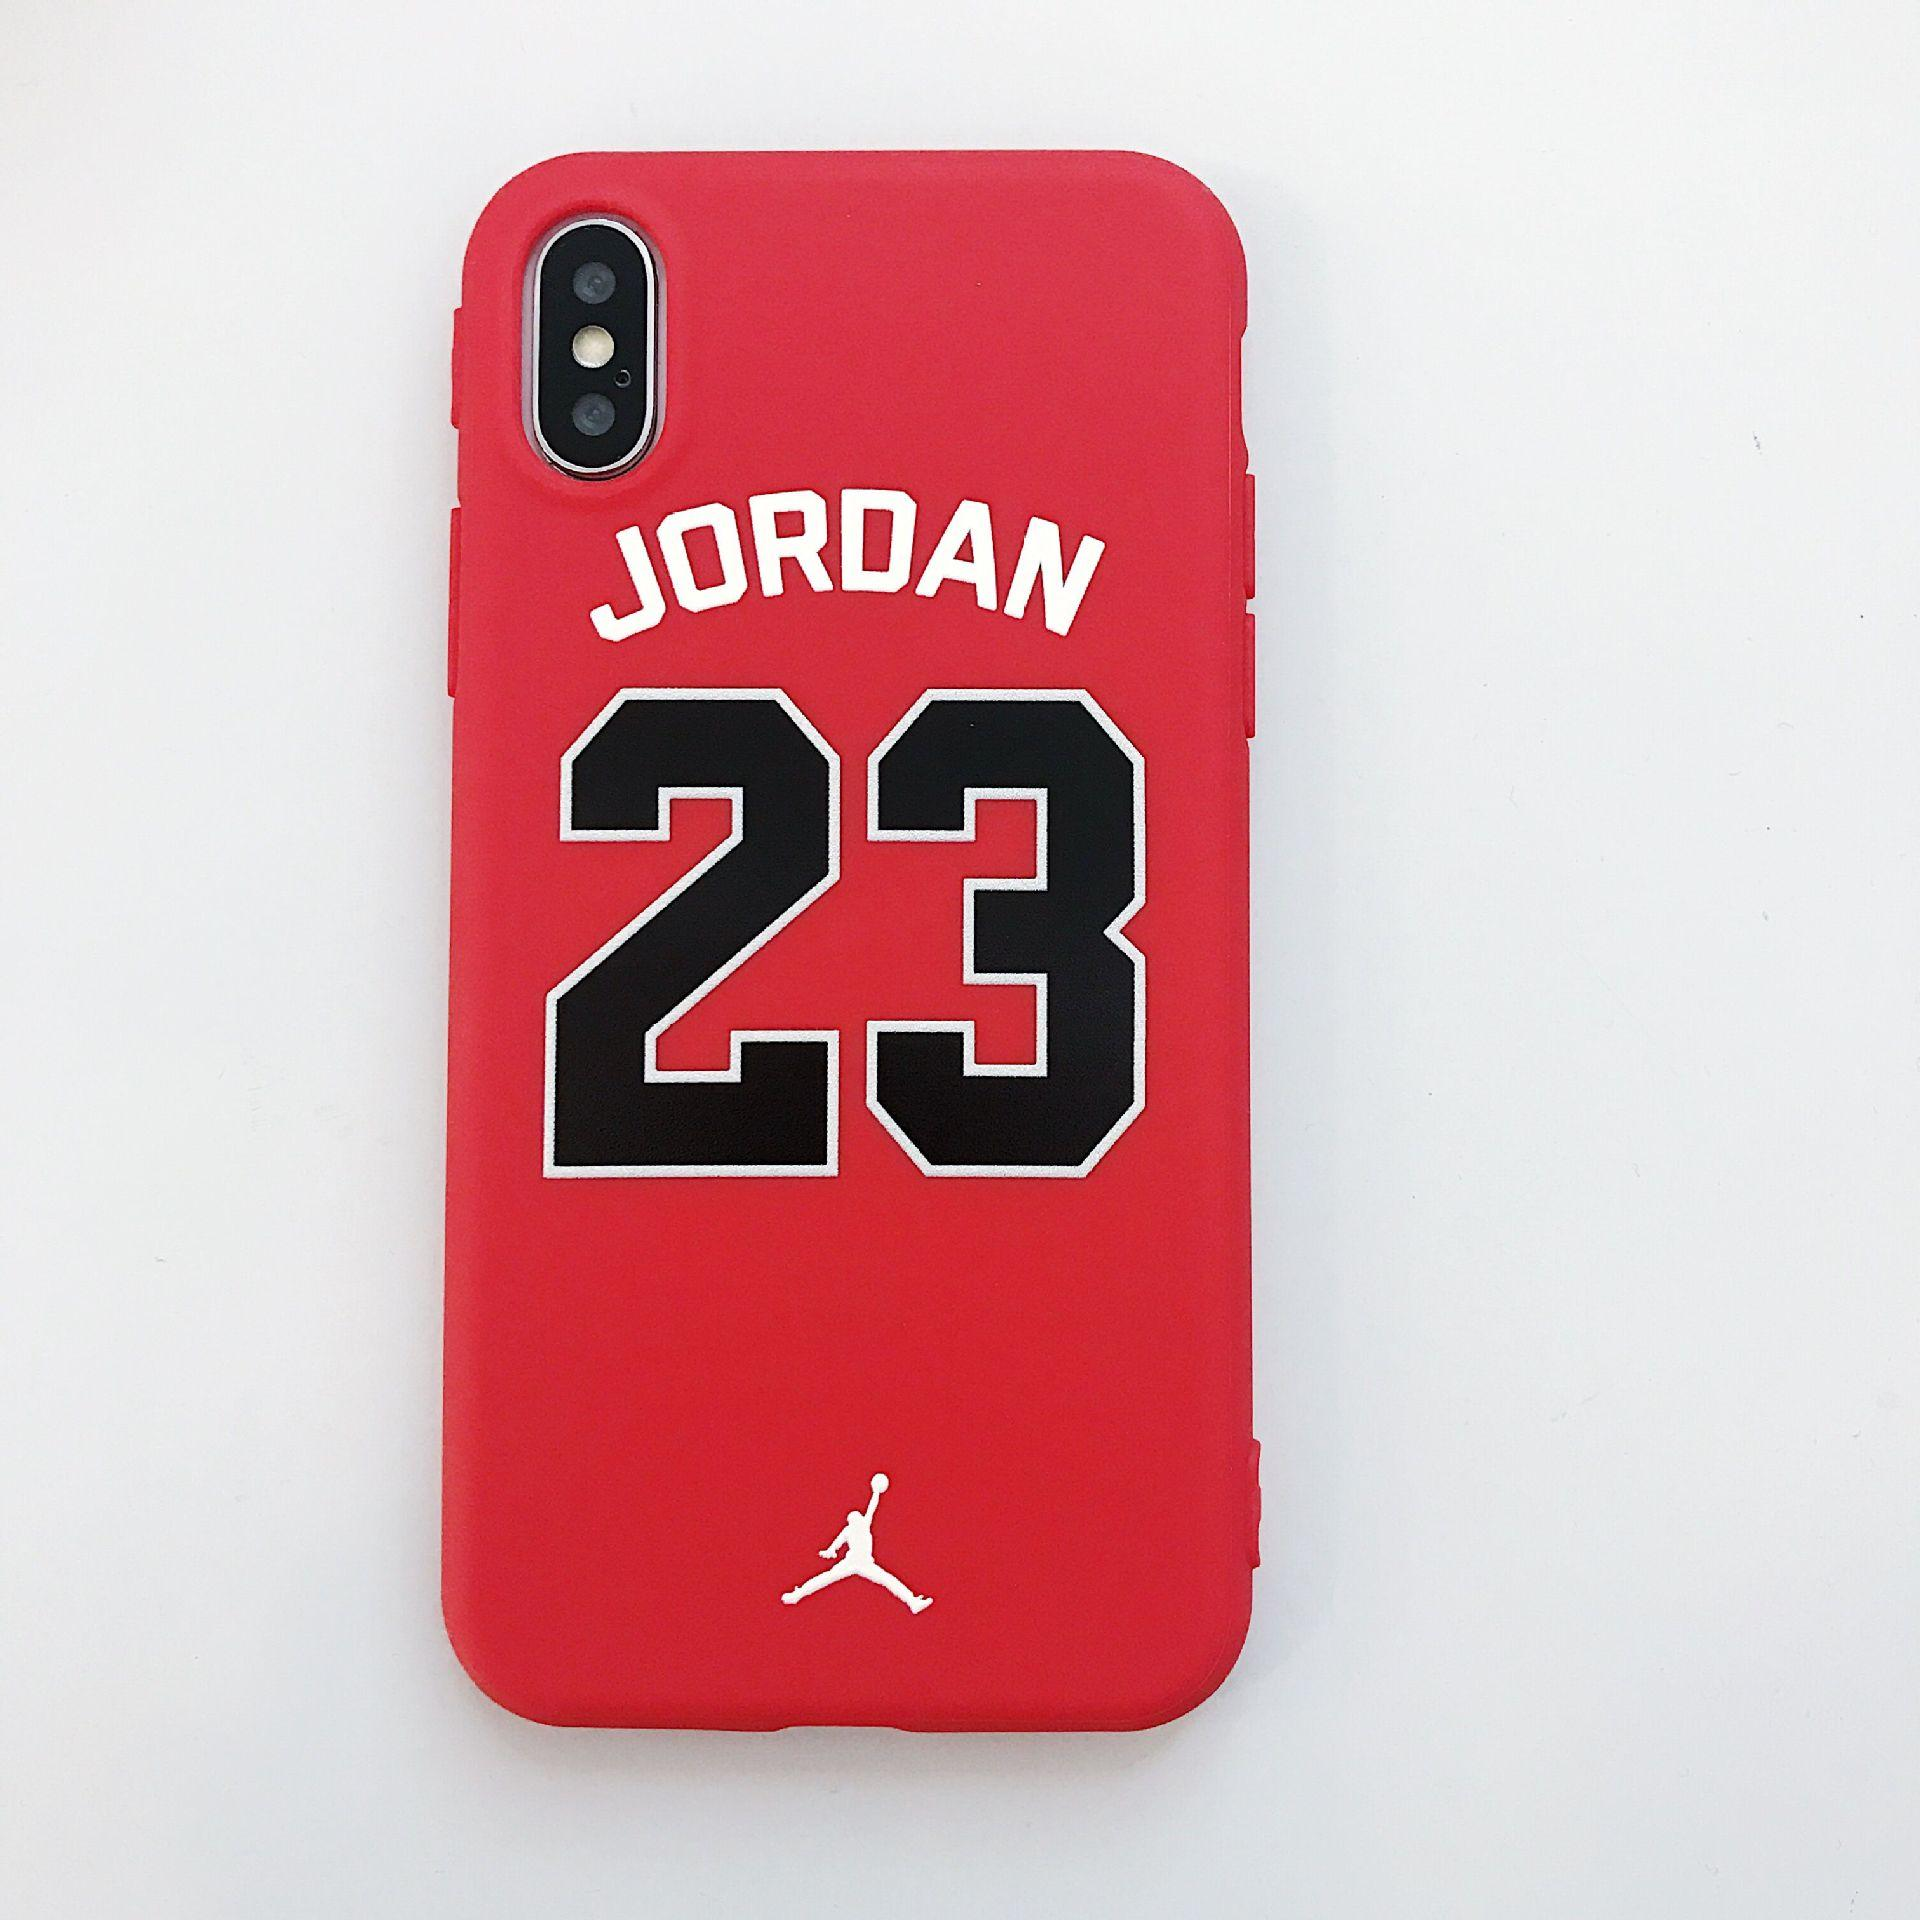 c43b64edeebe5 2019 Jersey Designer Phone Case For IPhone X 6 6S 6plus 7 8 7plus 8plus  High Street Style Hip Hop Brand Case Cover Phone Case With Rope Protective  Cell ...